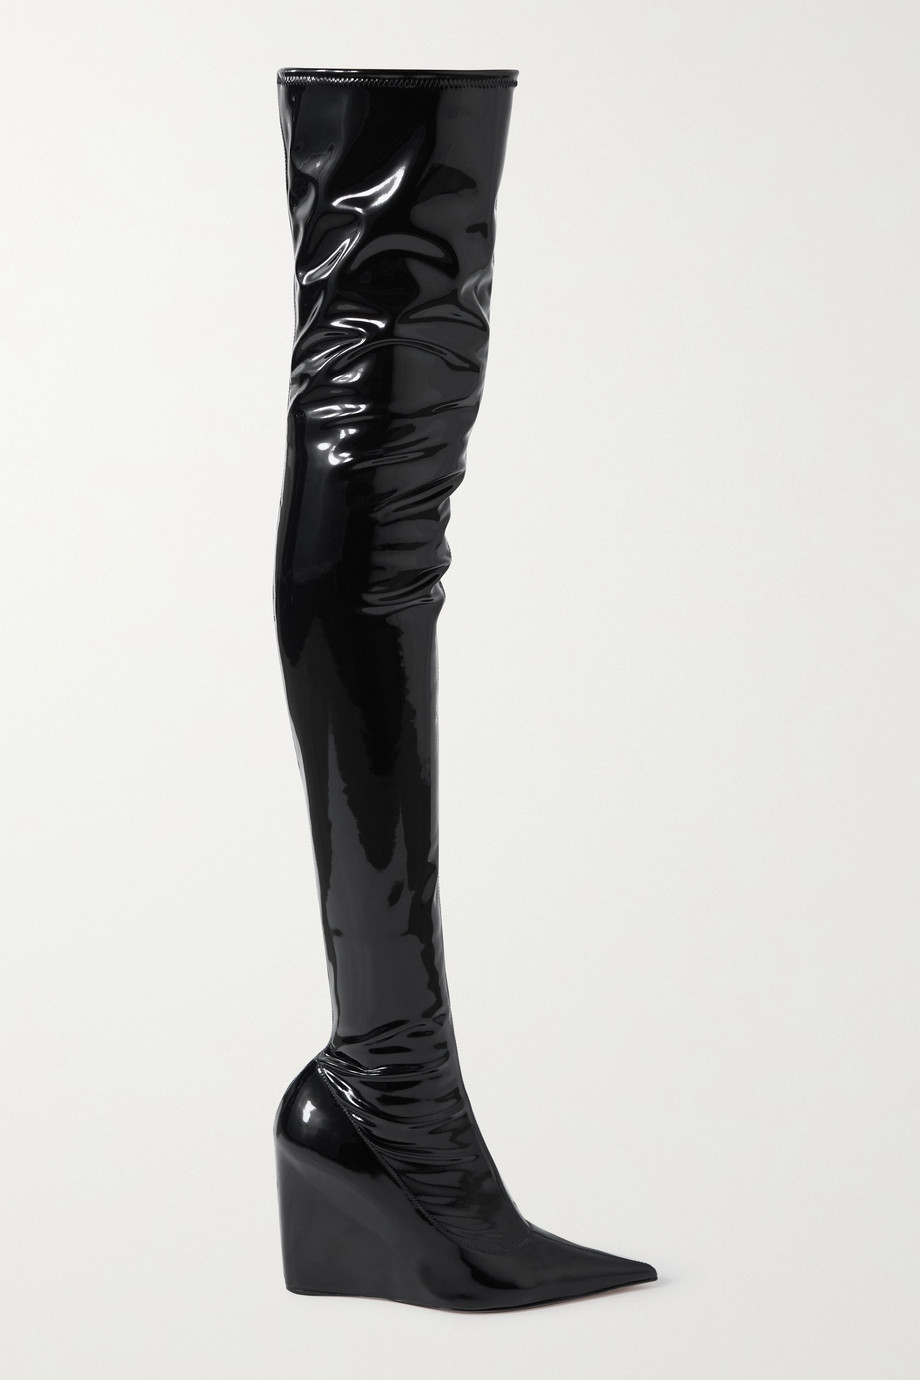 Amina Muaddi Danielle stretch-latex wedge thigh boots